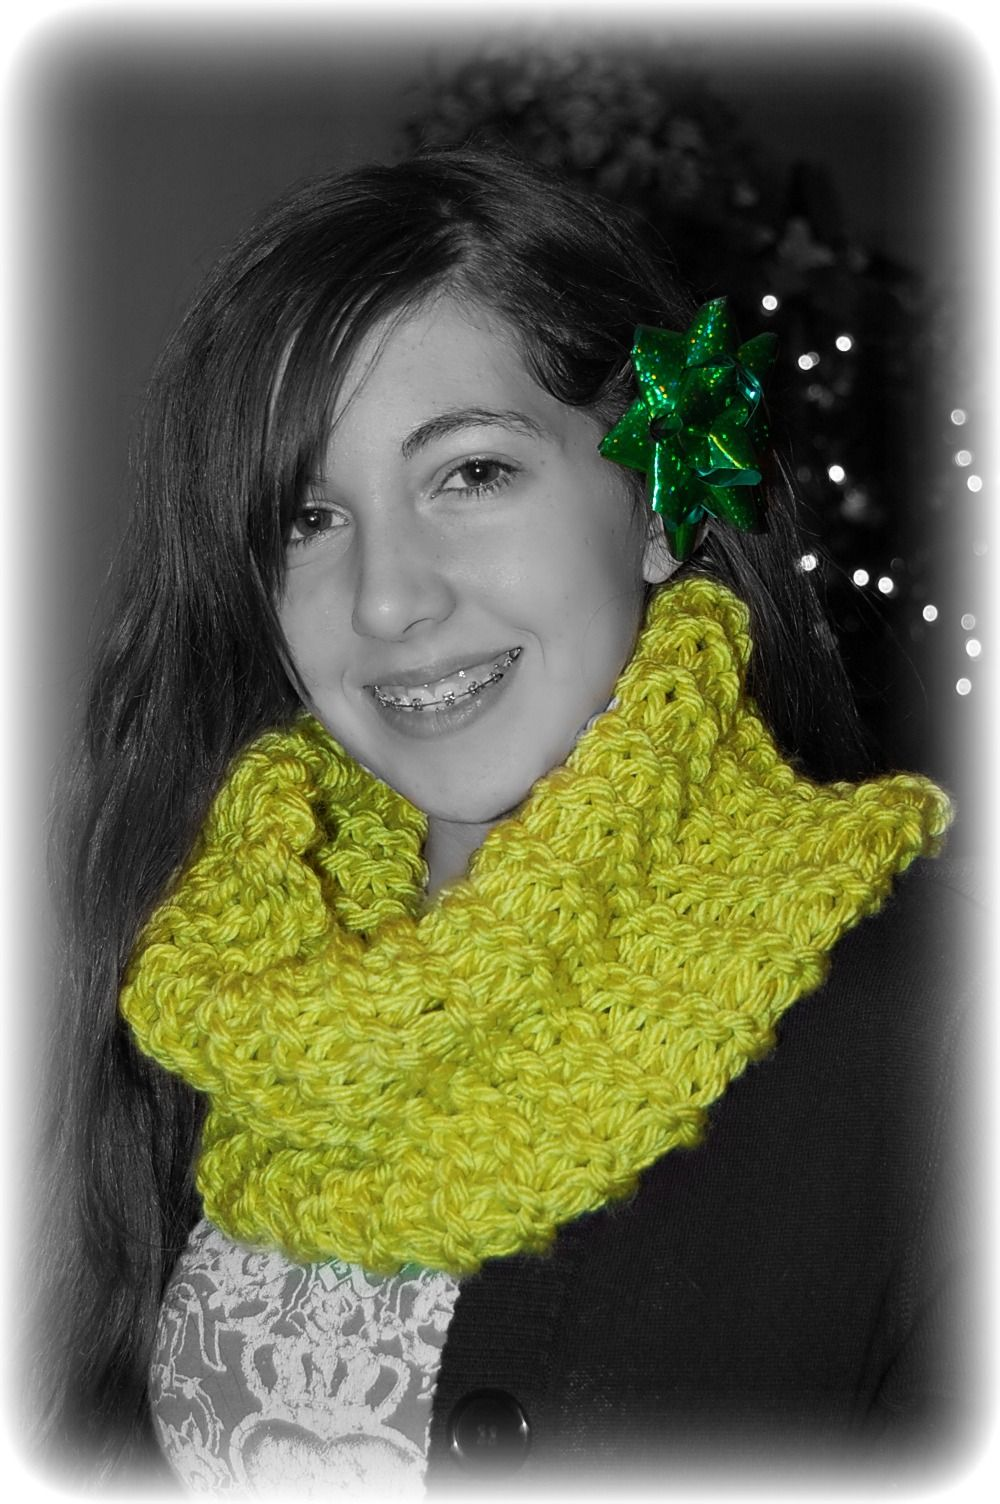 My 2nd knitted cowl